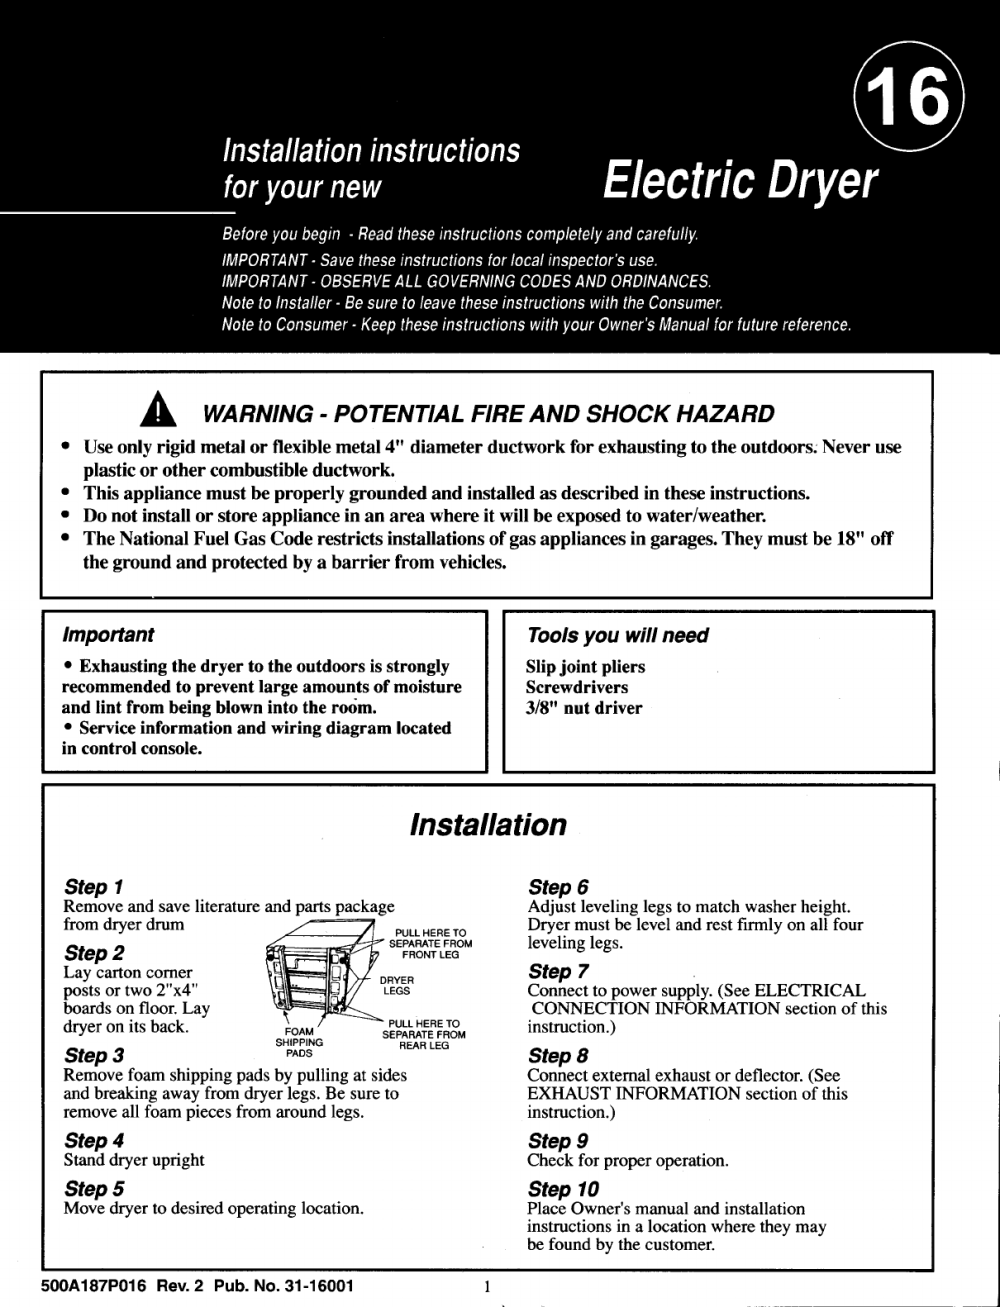 medium resolution of de60fa27aw2 96983 de60fa27aw2 96983 fisher paykel residential dryer manuals and guides l0812252 view the owners manual for your fisher paykel